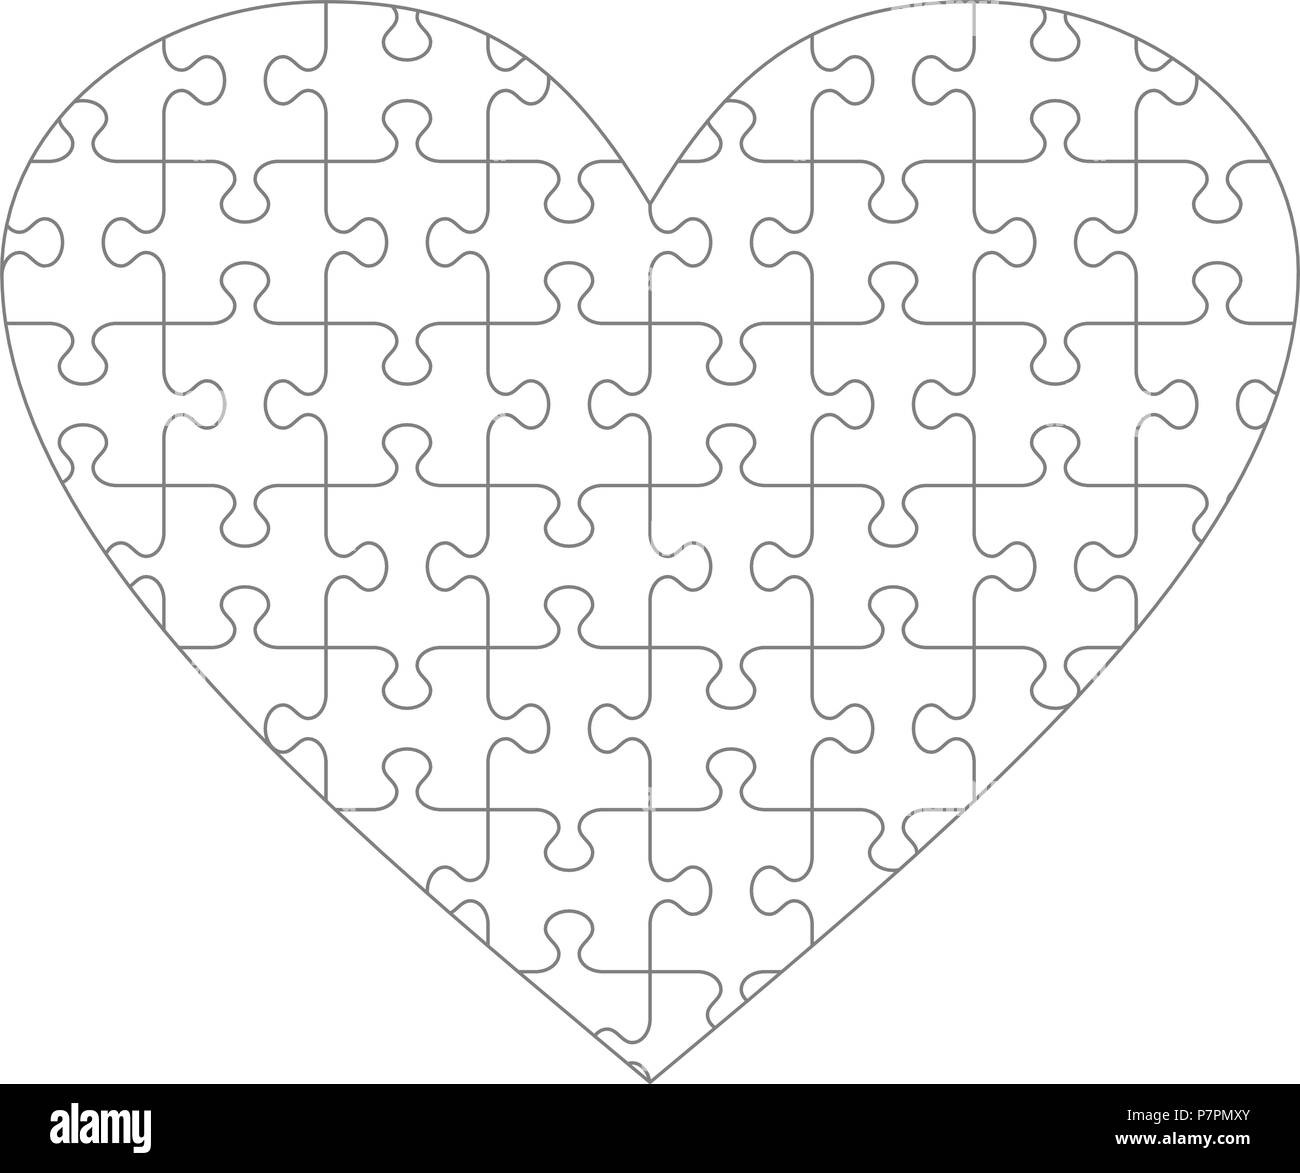 heart shaped jigsaw puzzle blank template with classic style piece